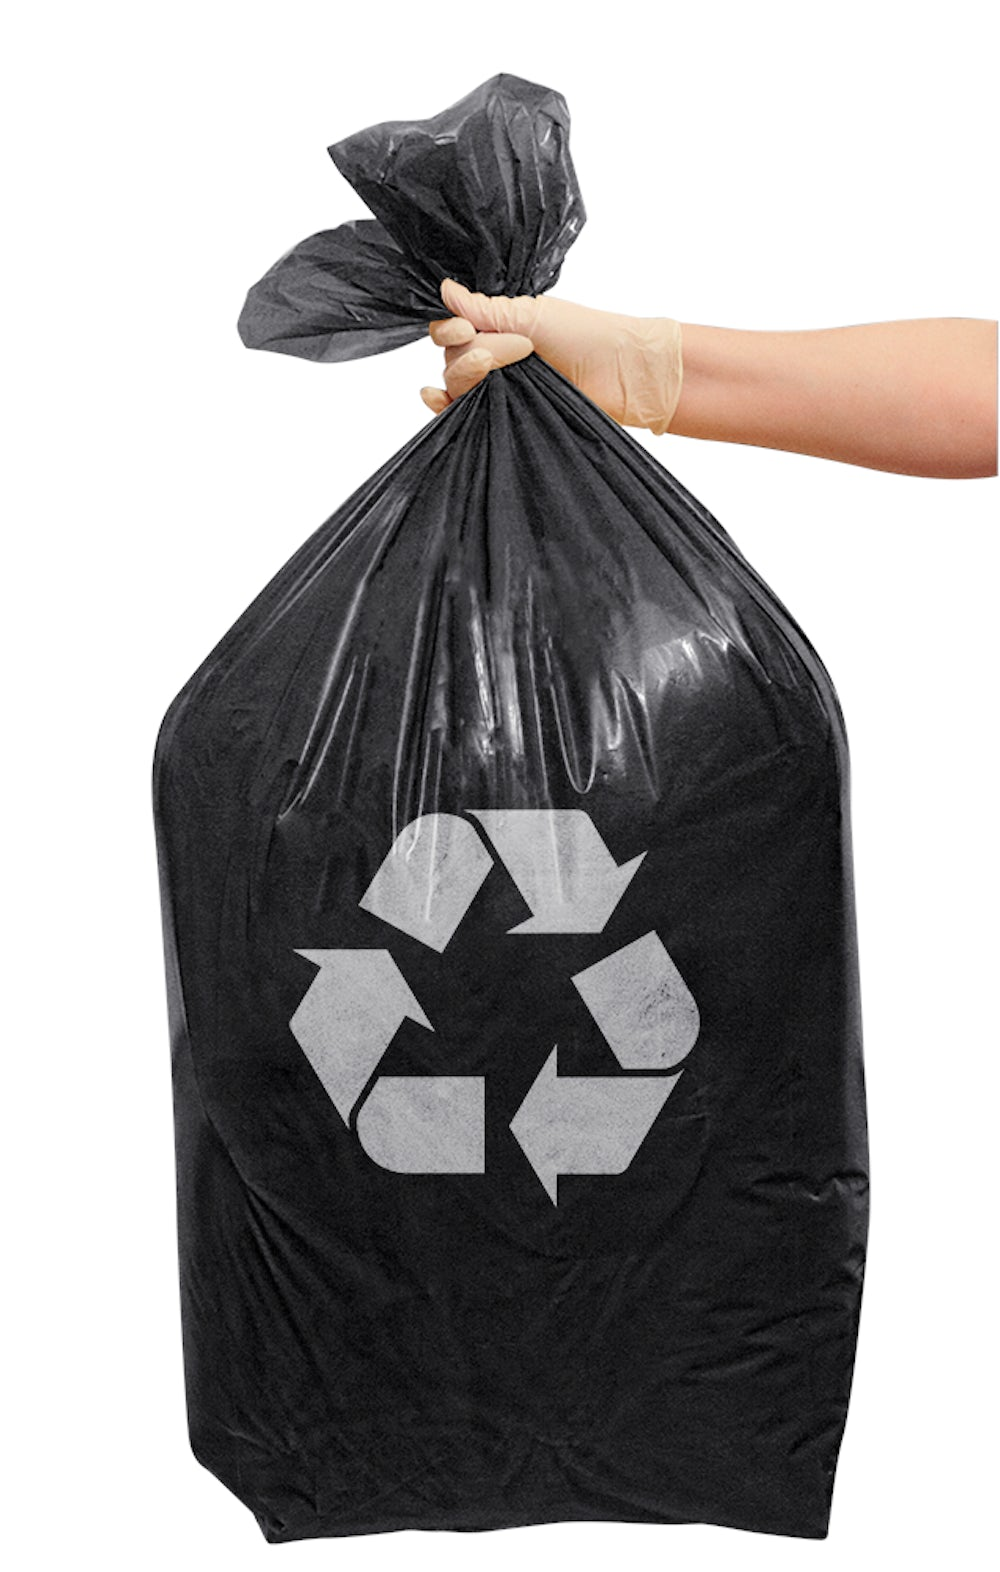 Black bag of recyclable waste